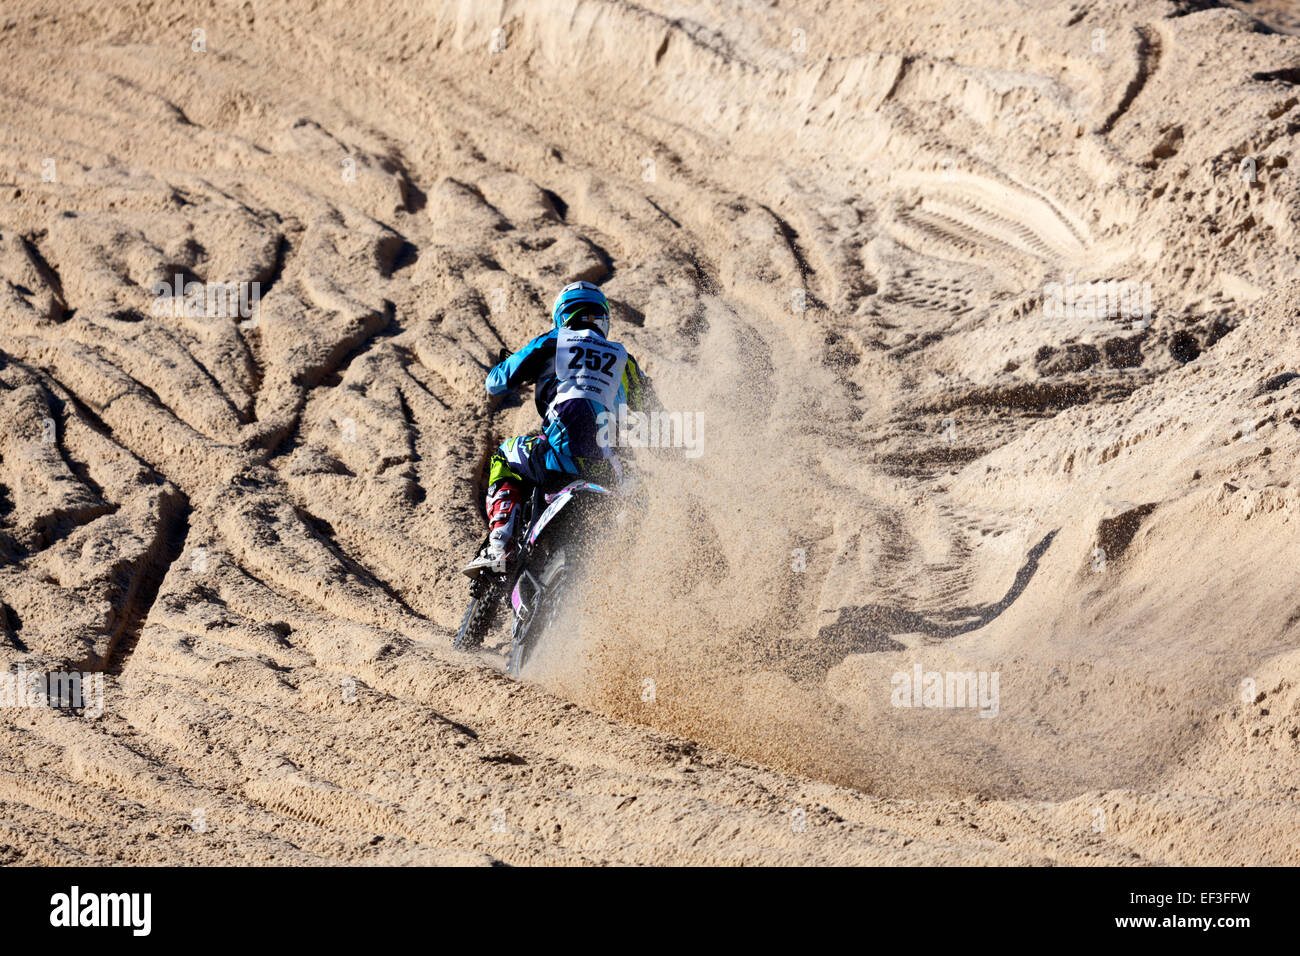 The Hossegor's 'round dance of the sands' (France). This racing motorcycle event combines speed, endurance - Stock Image